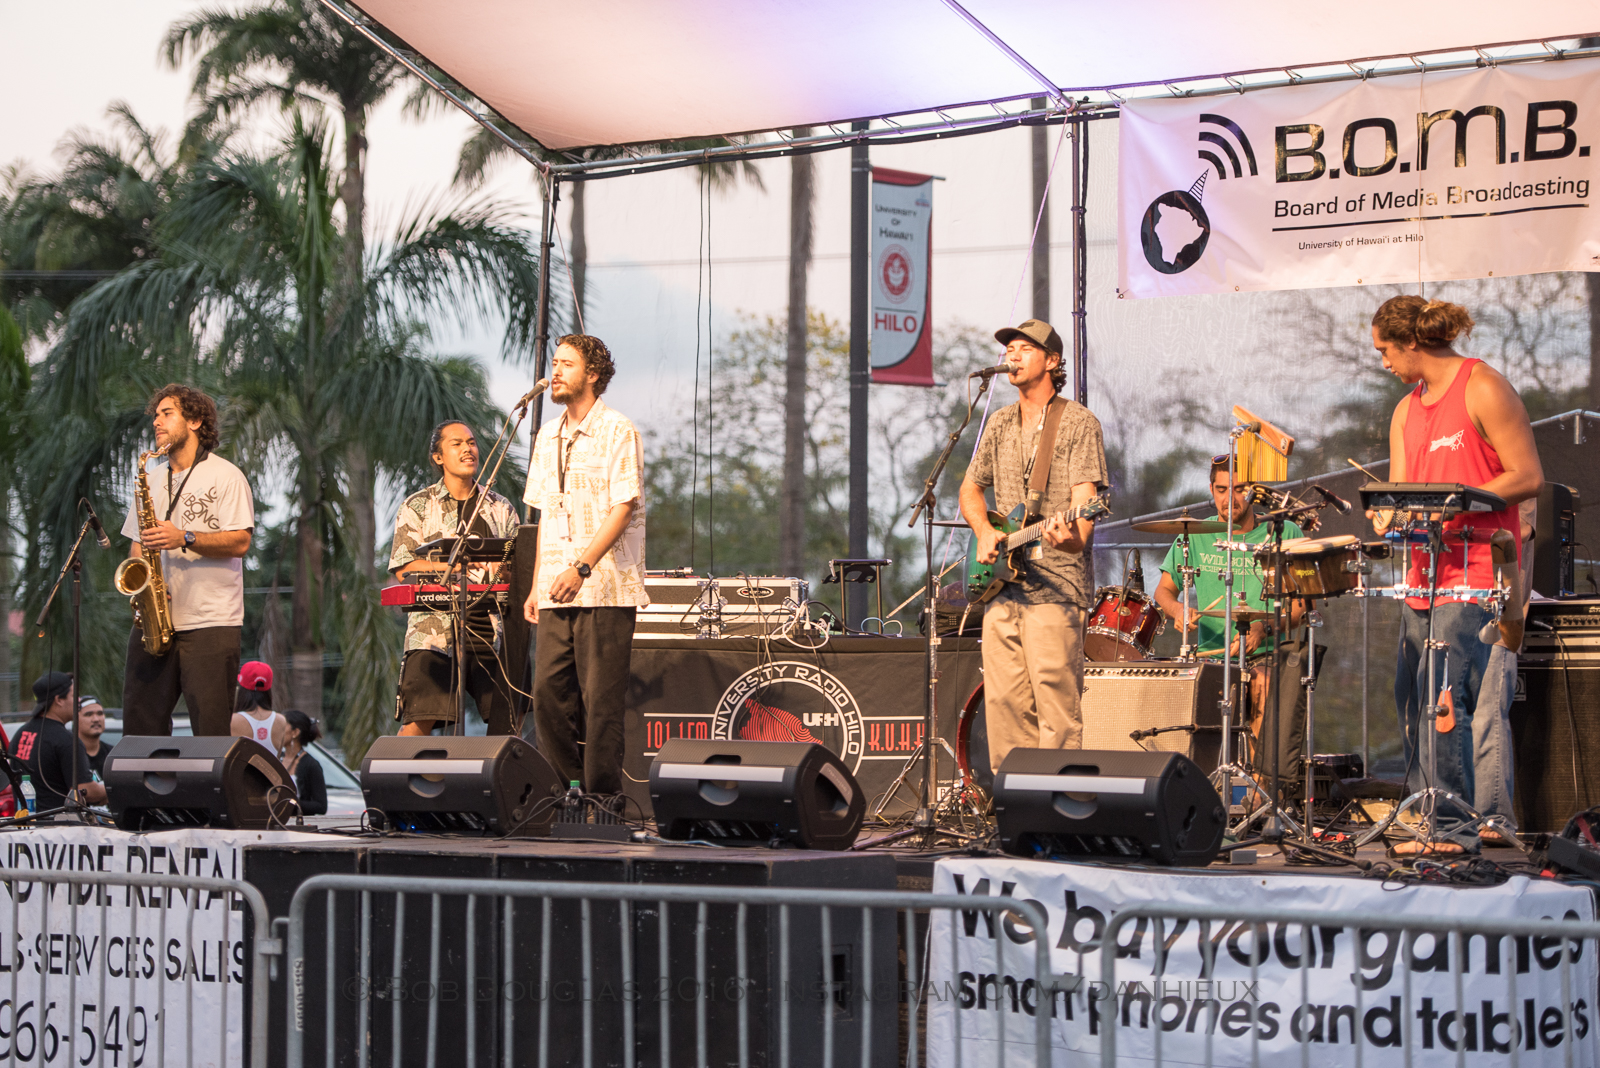 Band performing on stage. Sunset in background.